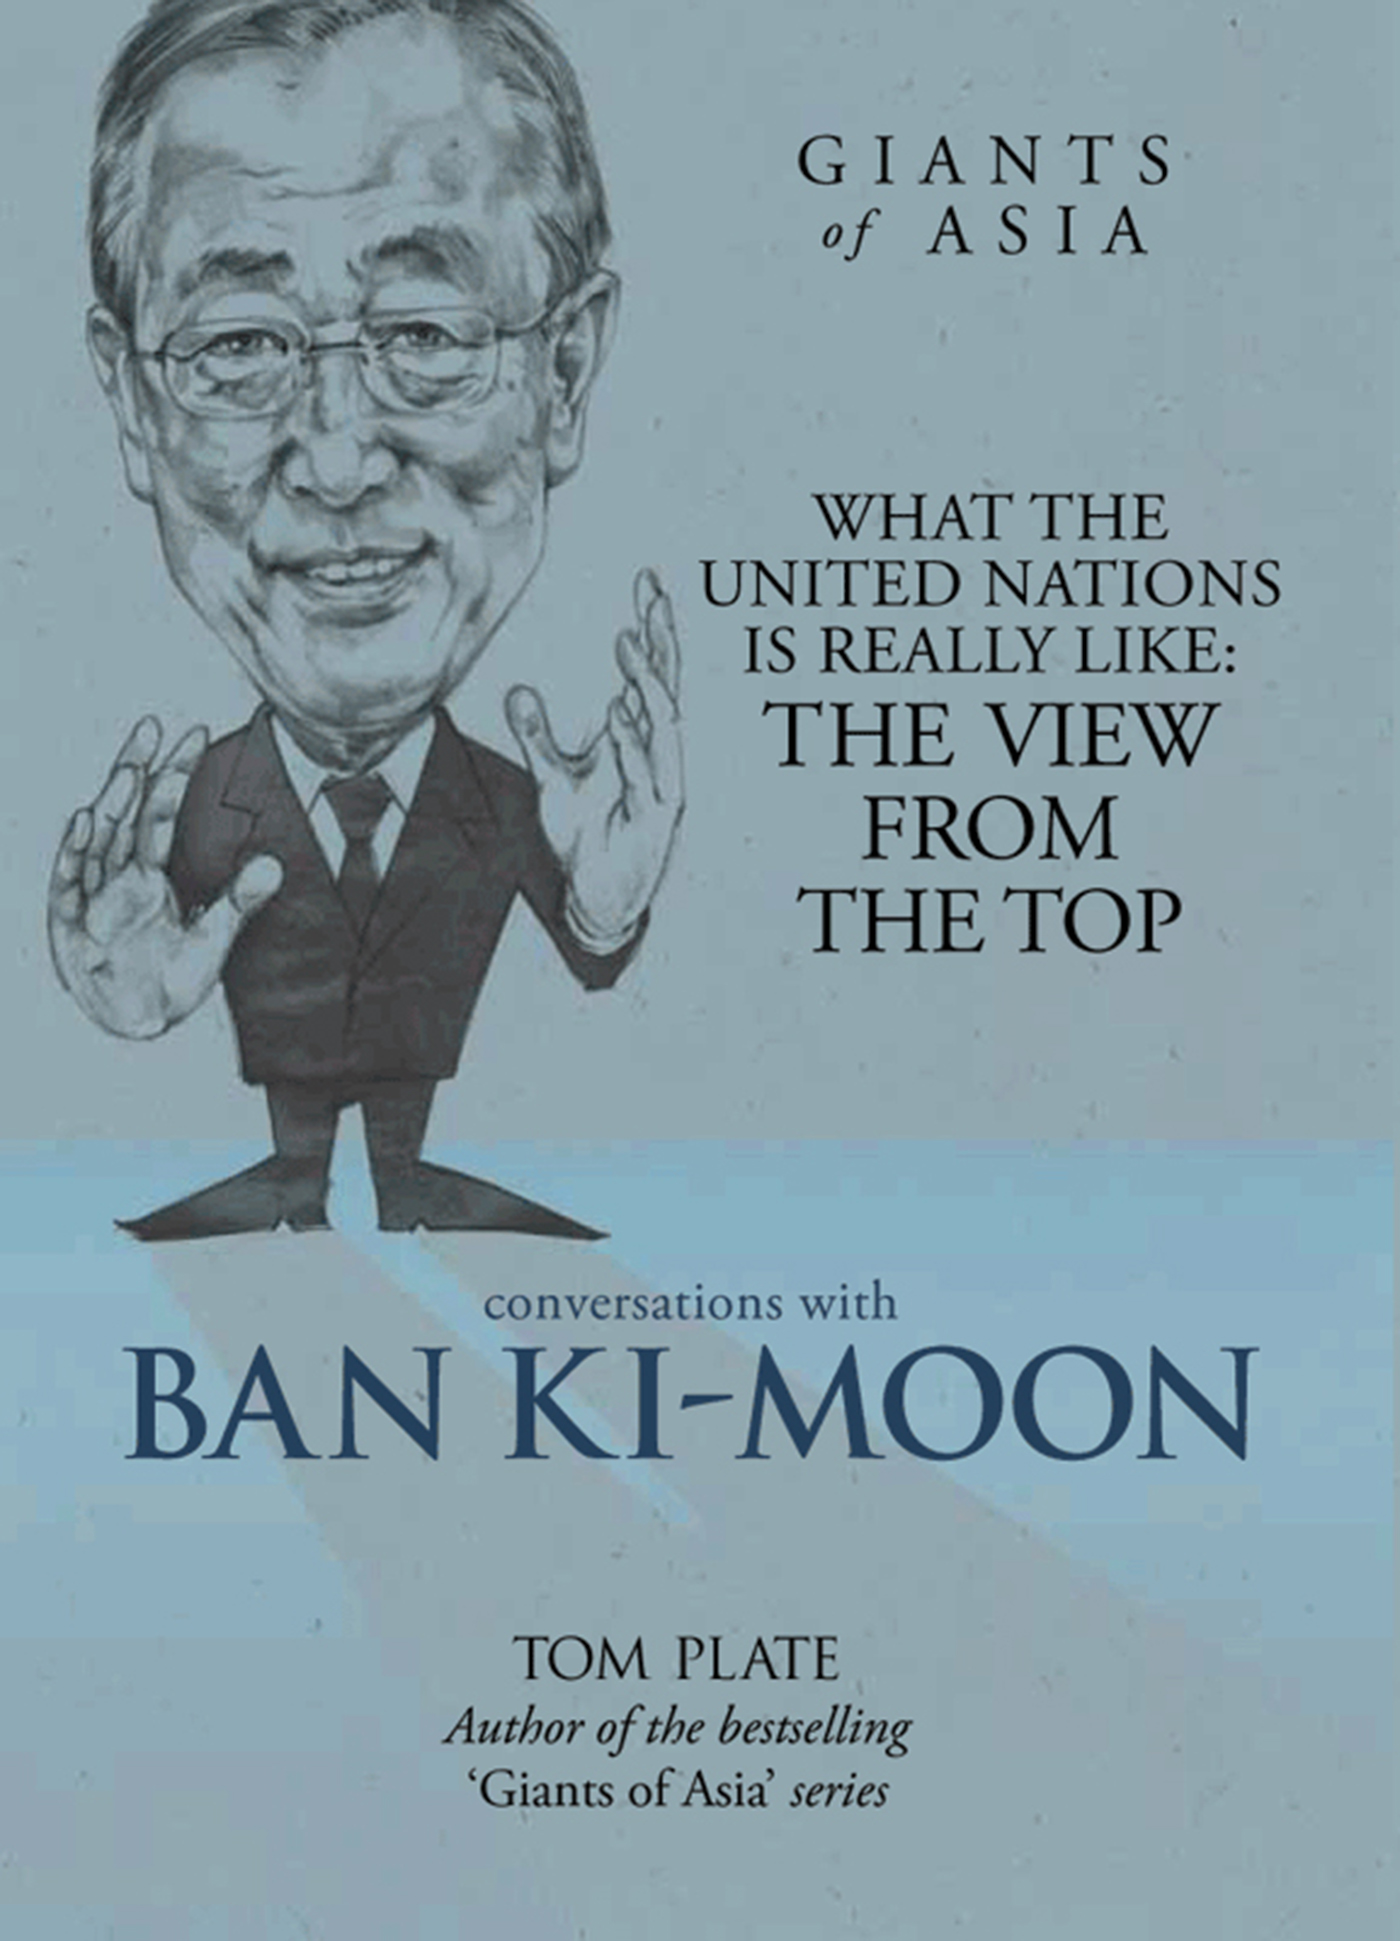 Giants of Asia: Conversation with Ban Ki-moon